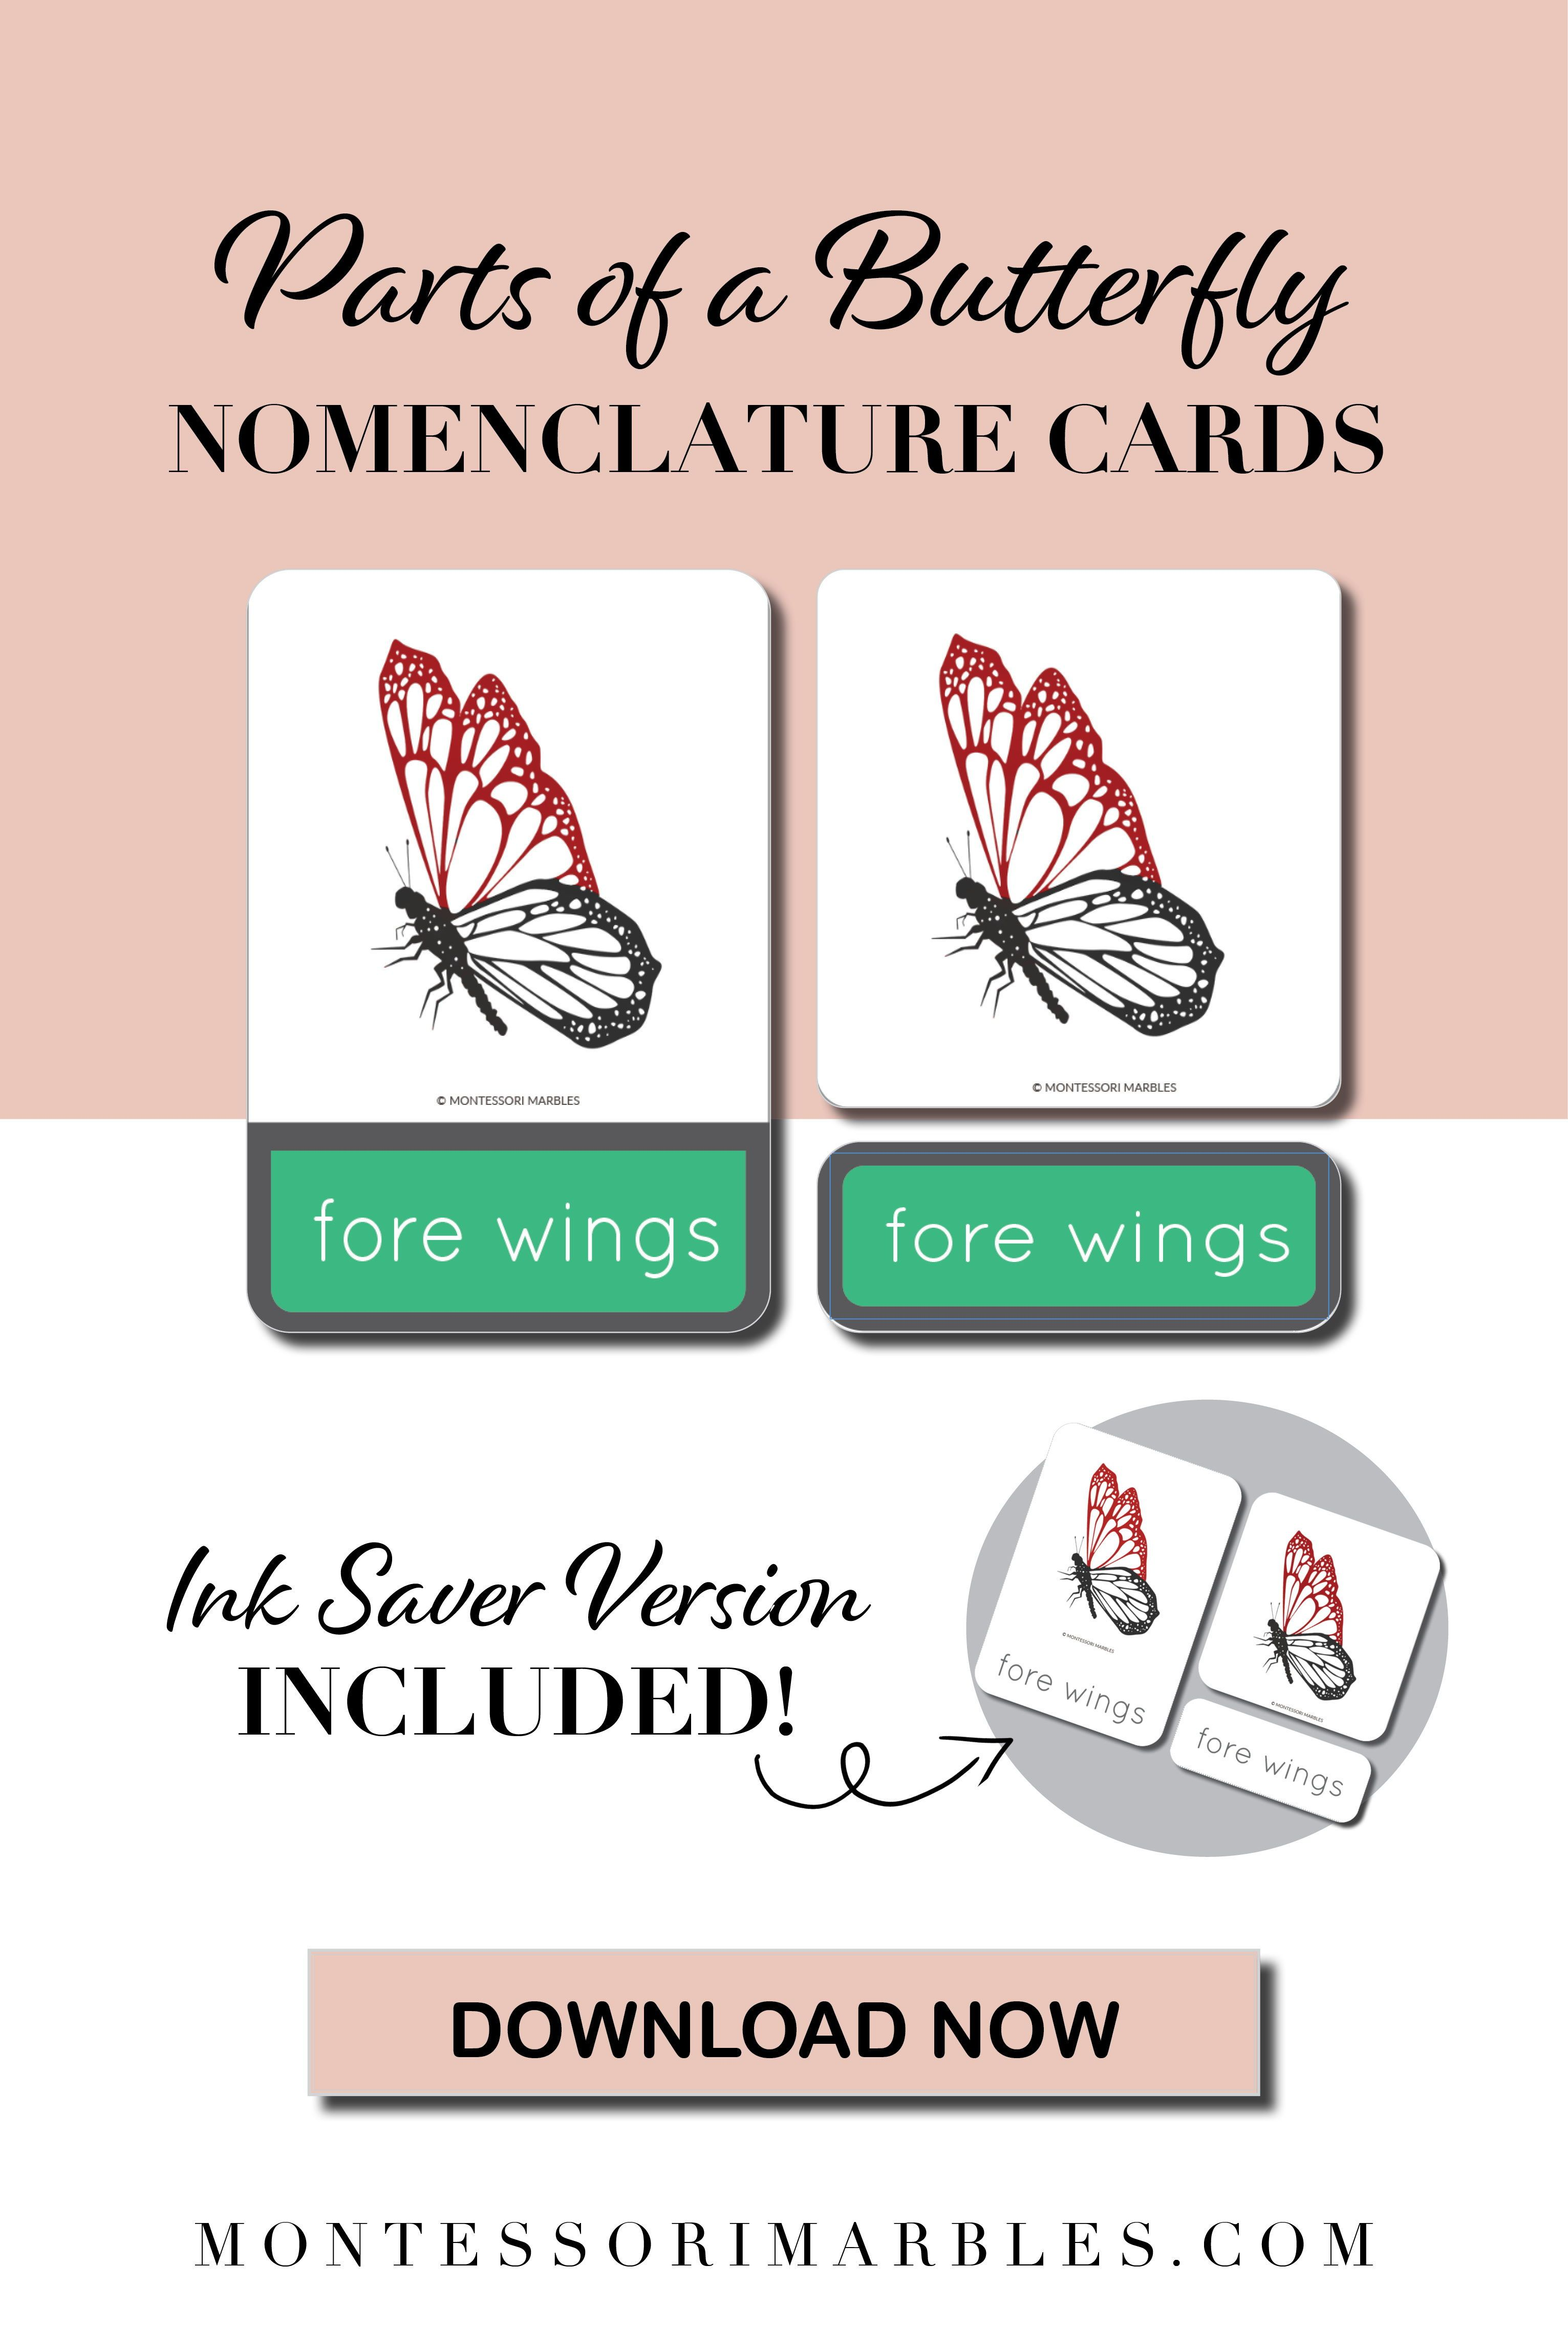 Parts Of A Butterfly Nomenclature Cards